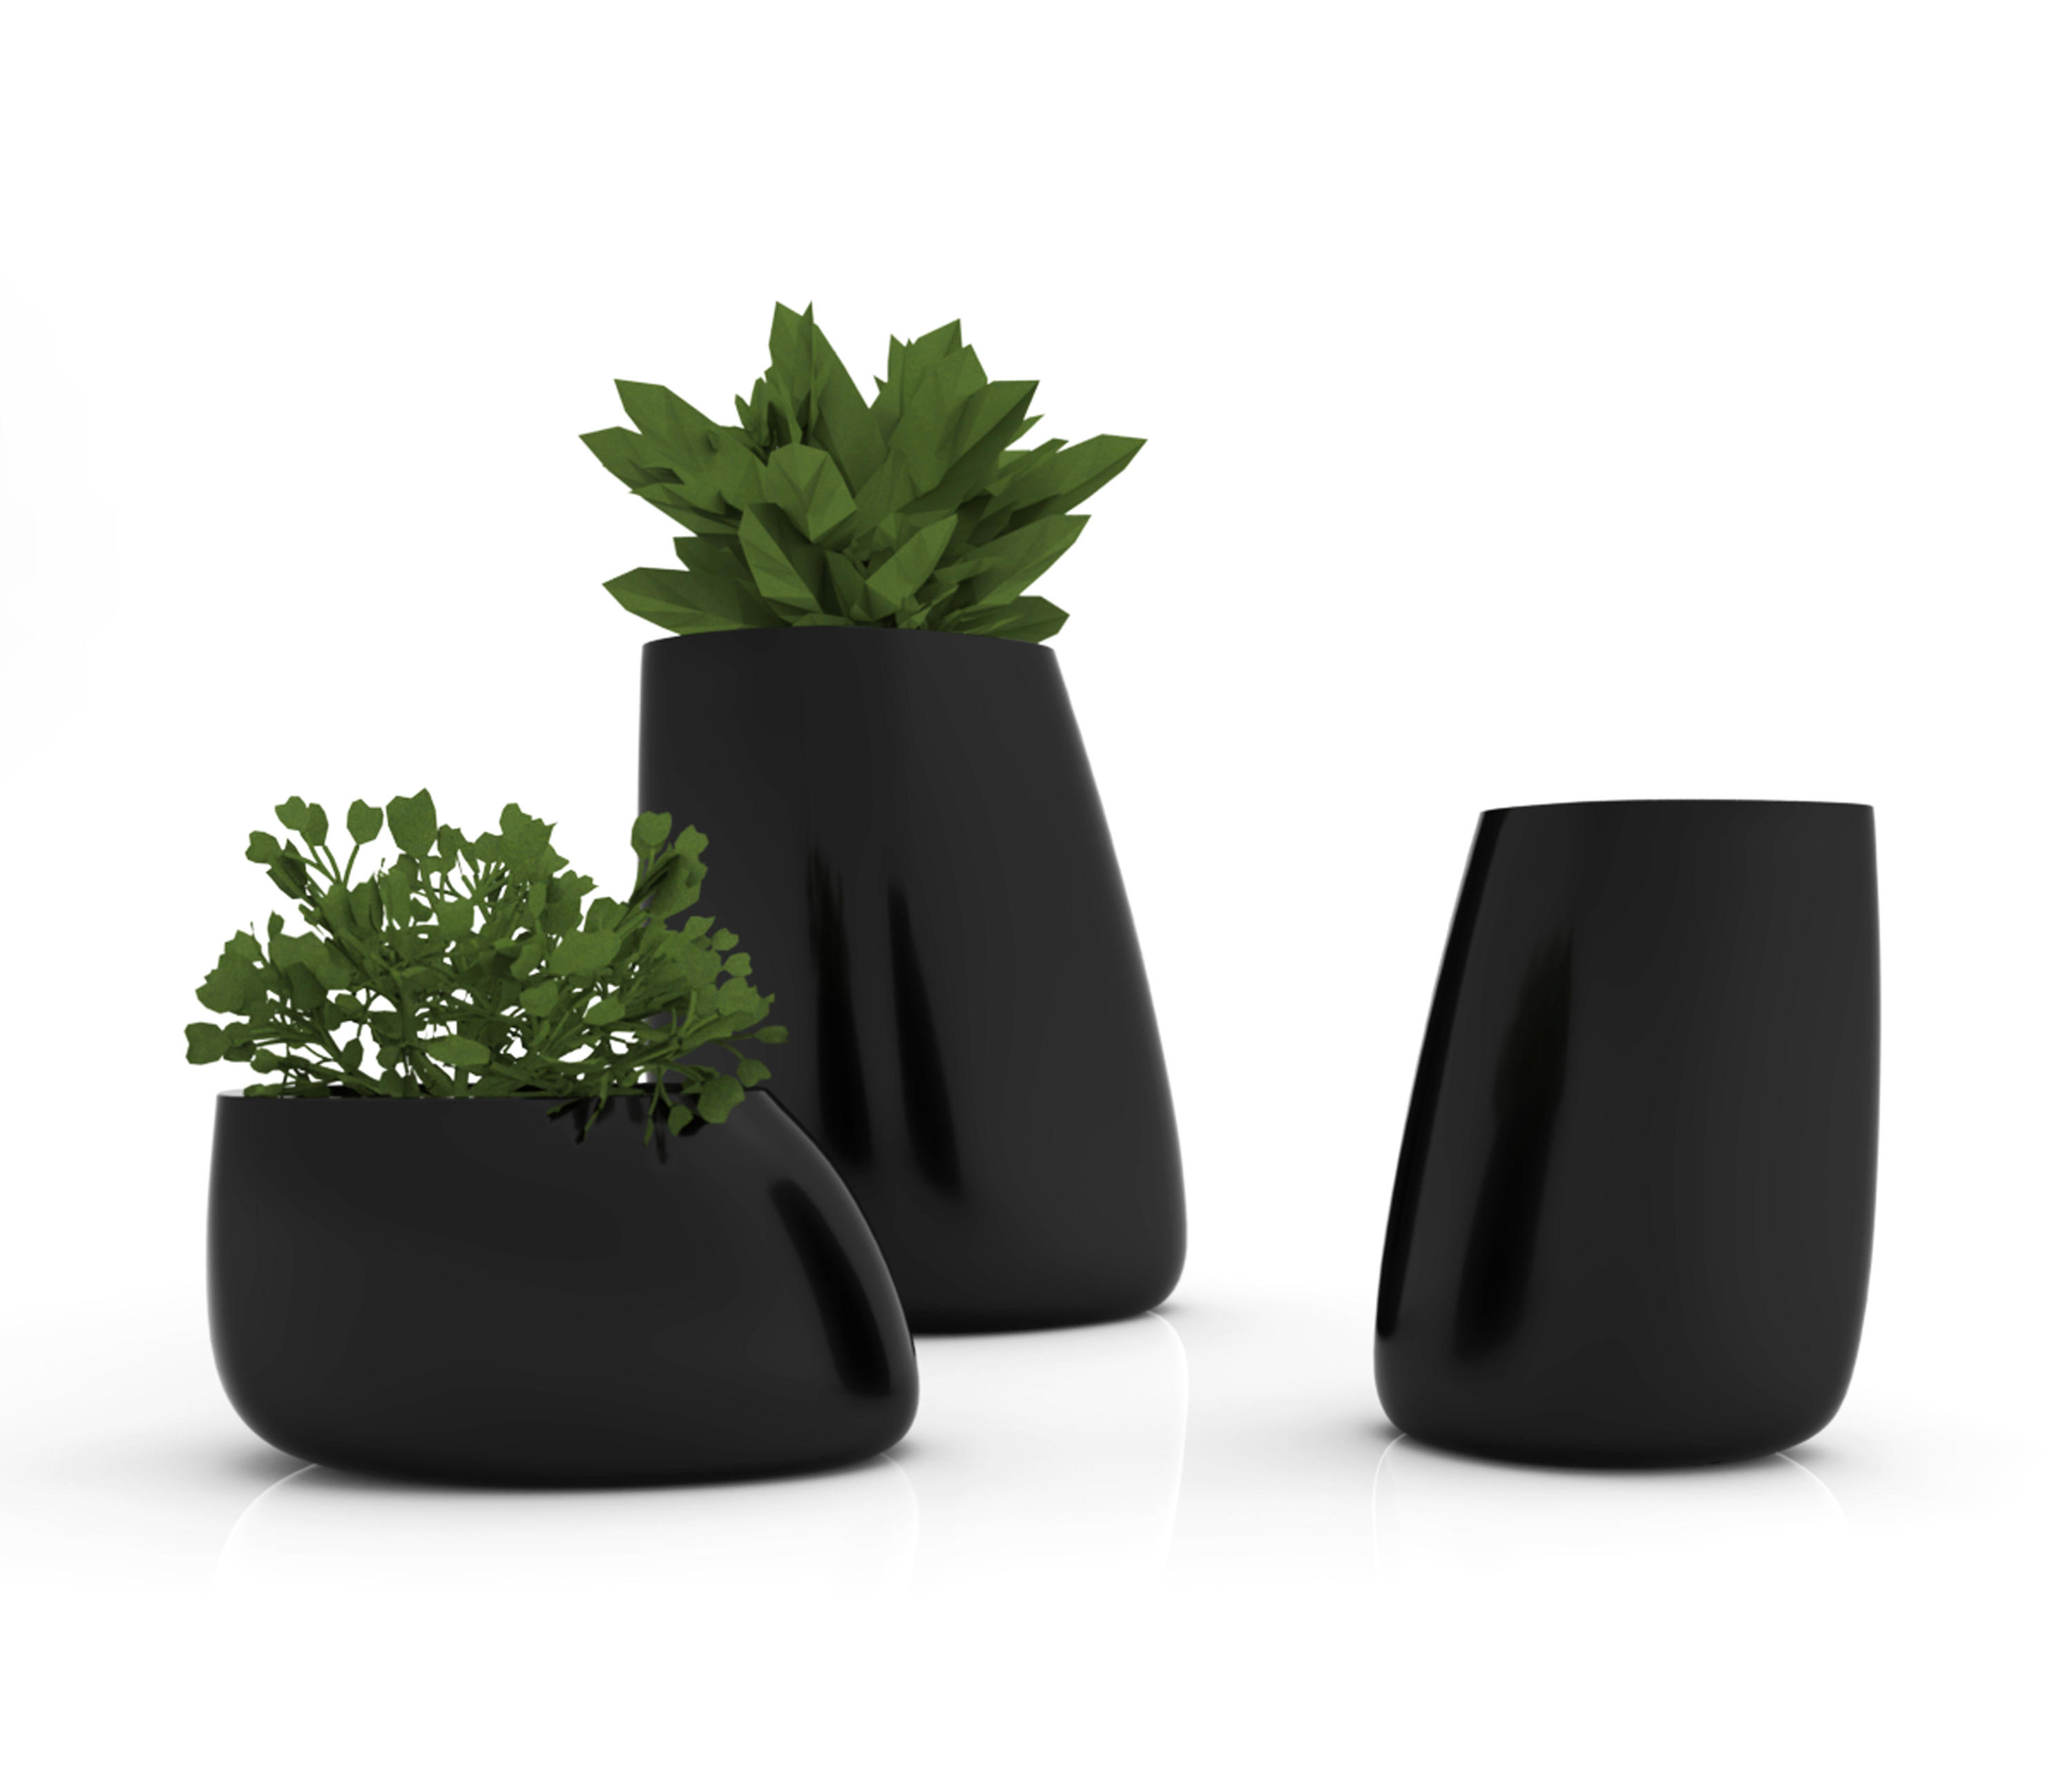 Jardineras Modernas Interiores Stone Pot - Plant Pots From Vondom | Architonic